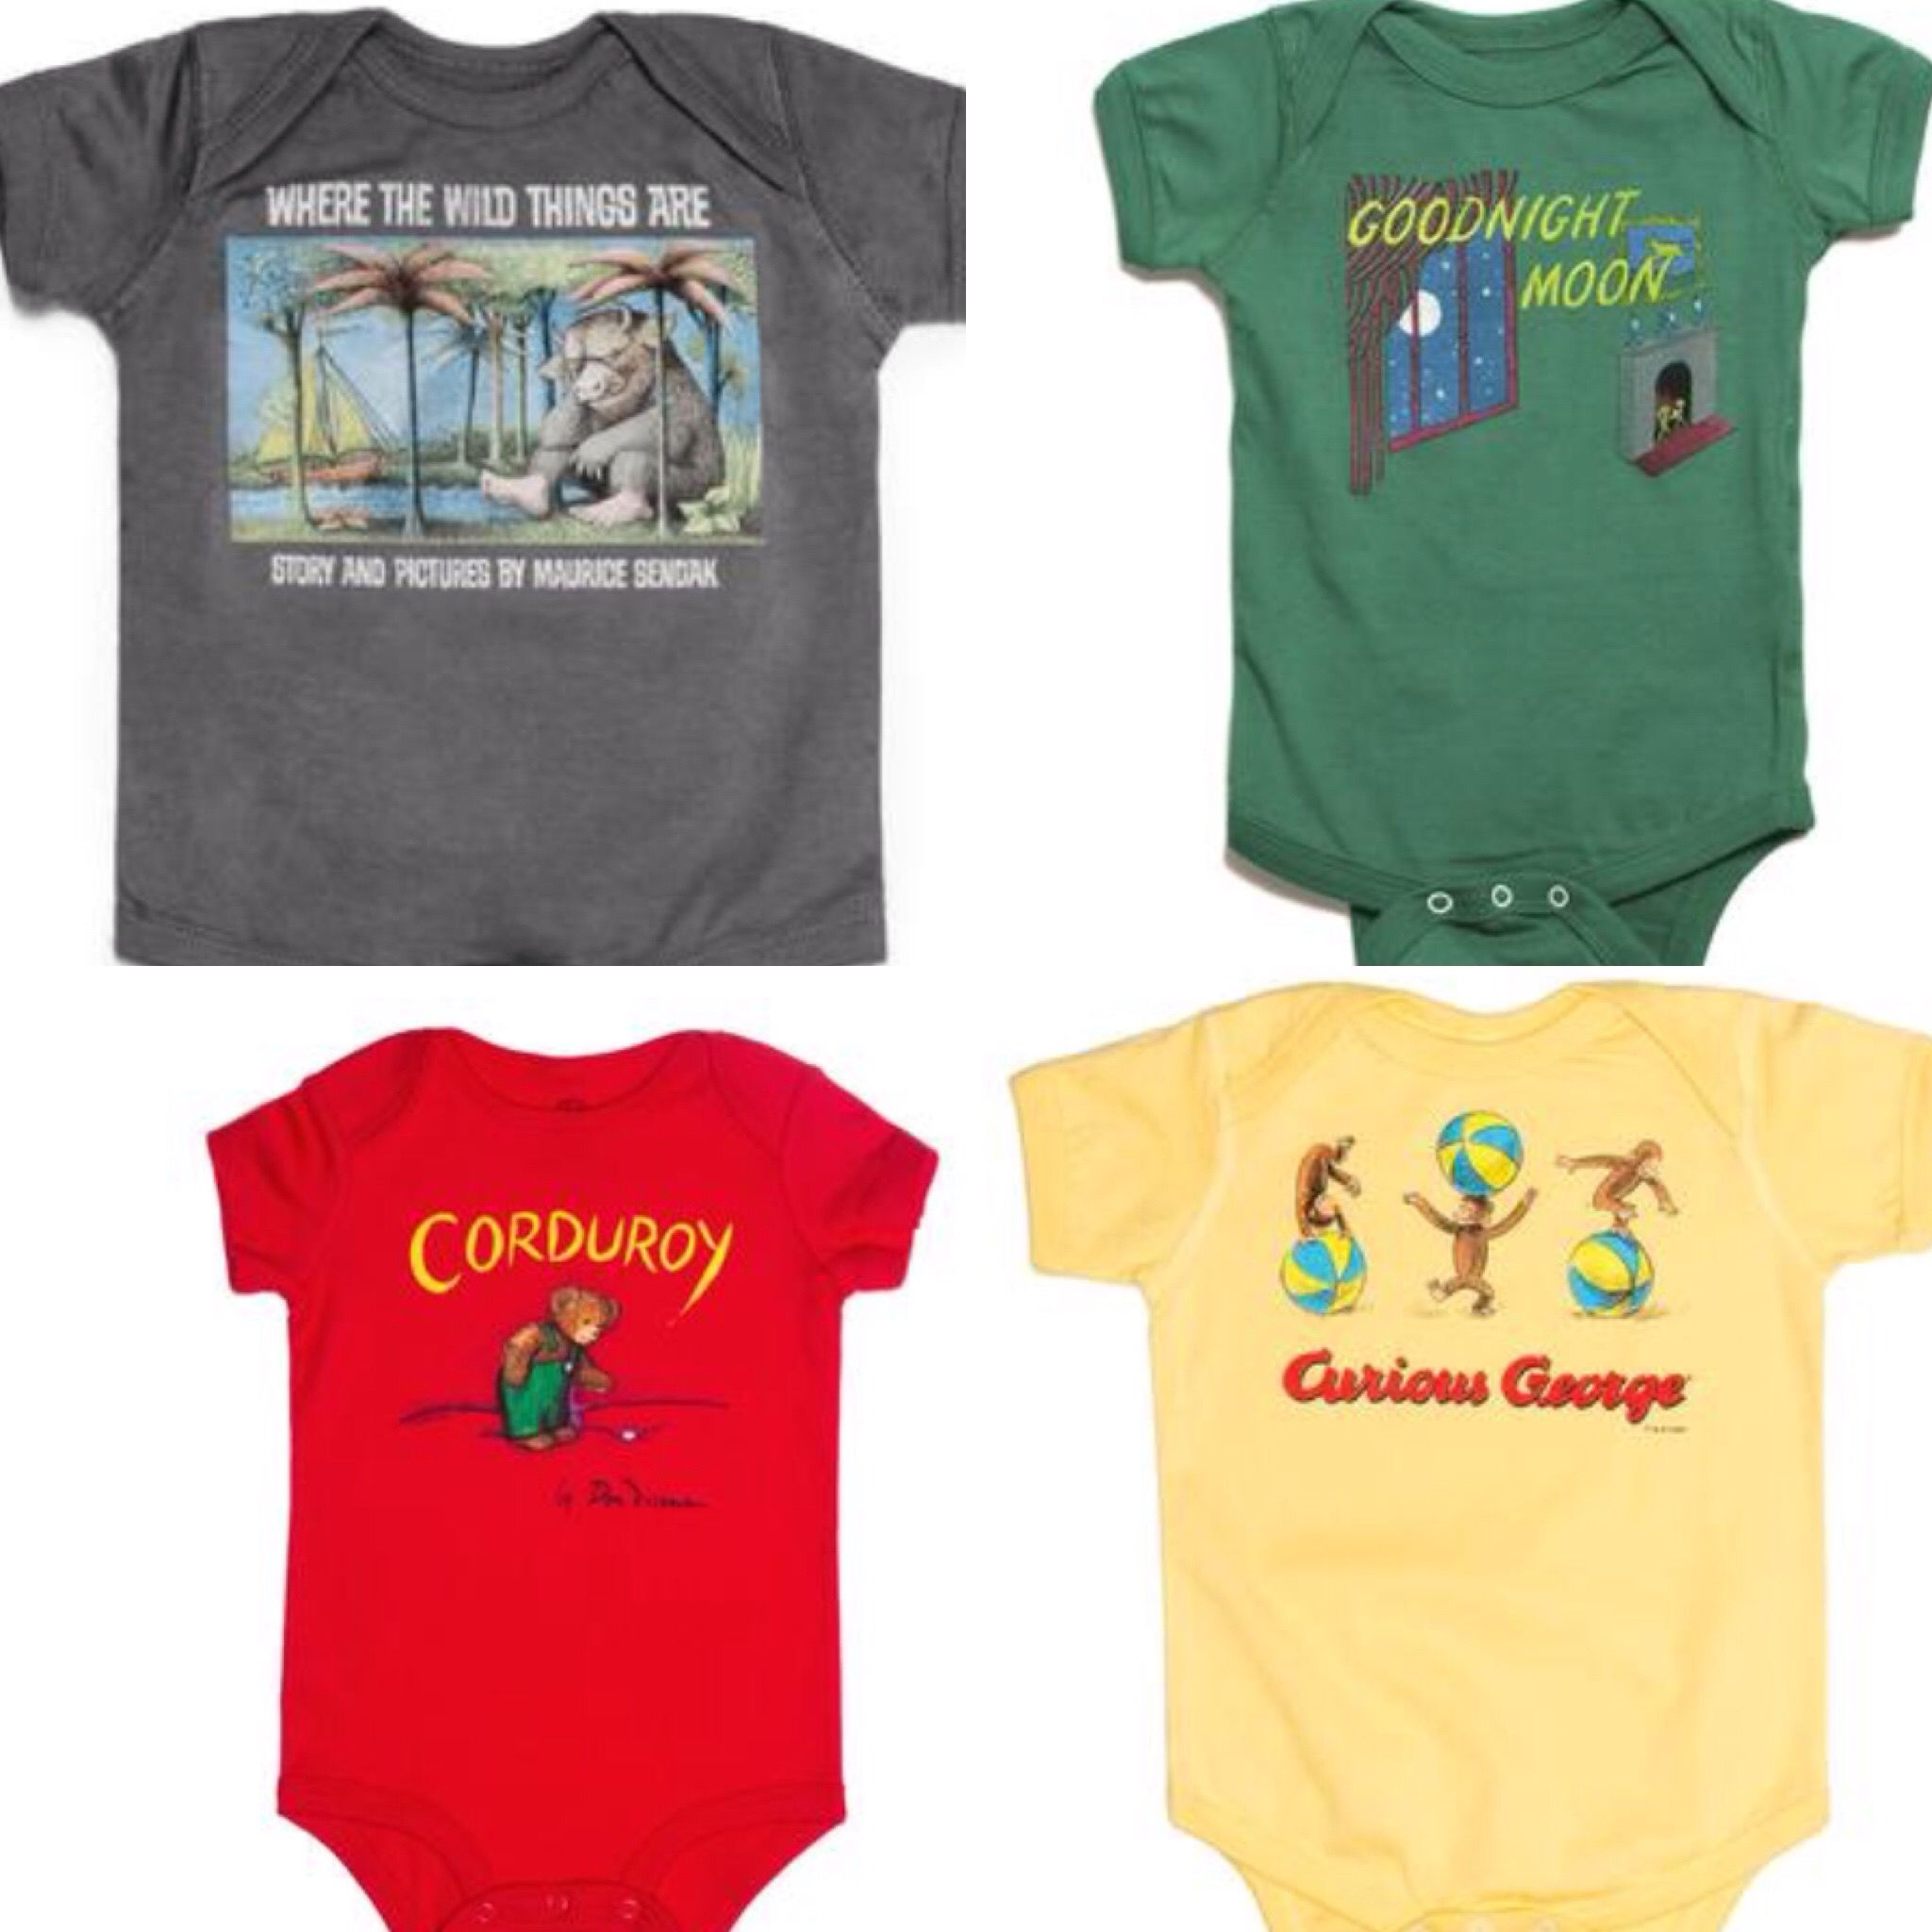 efa70aee Onesies & Toddler Shirts from Out of Print Clothing. Share your love of  books with your children. Where the wild things are. Goodnight Moon.  Curious George.